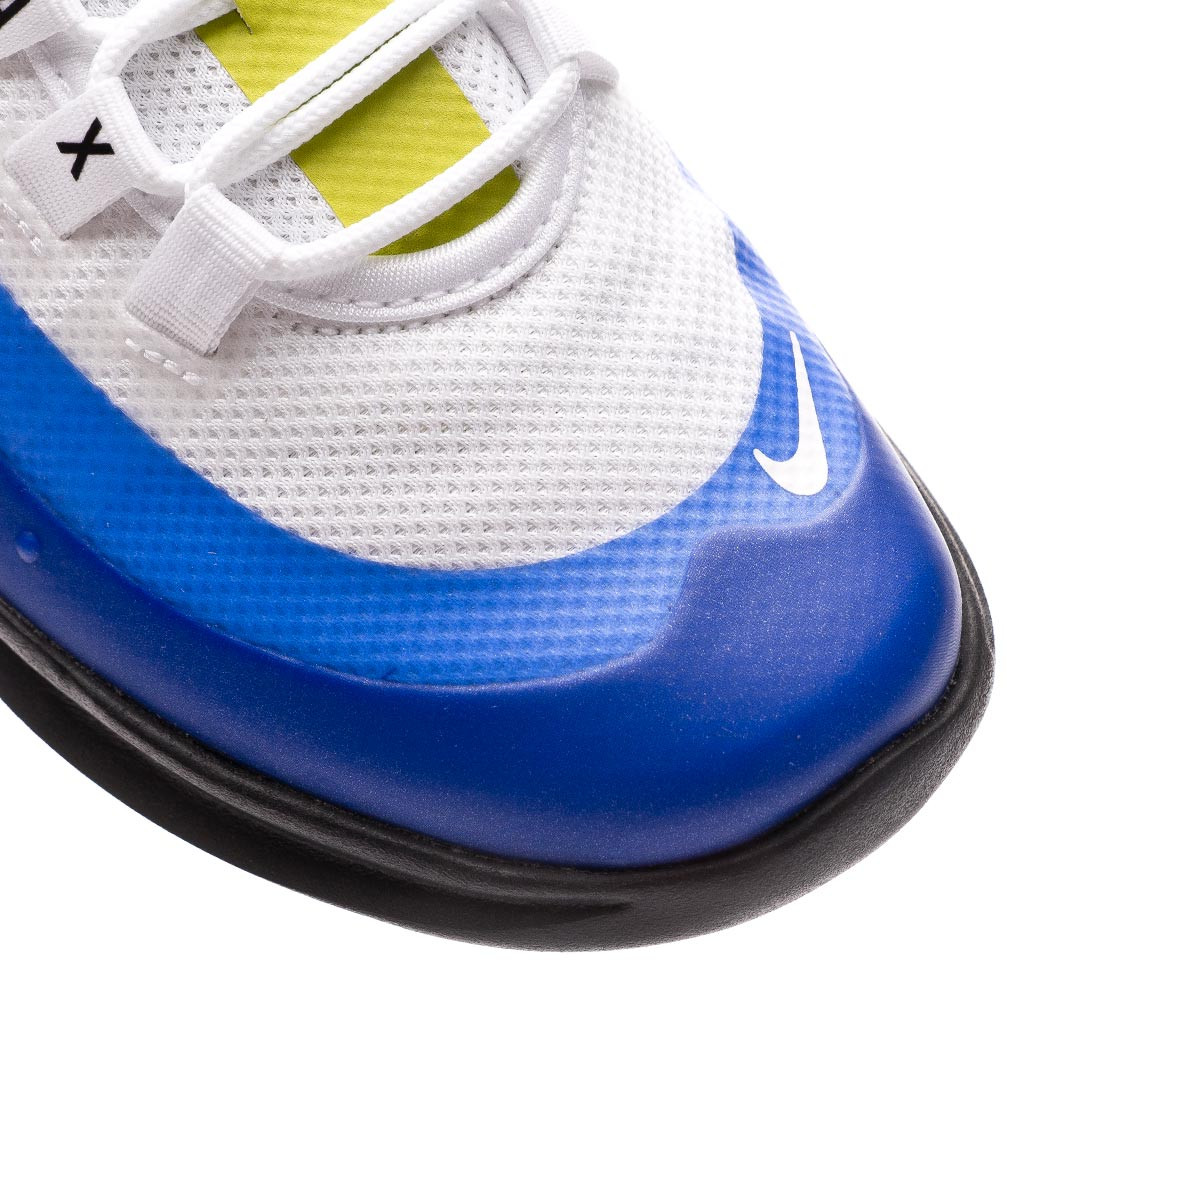 Devorar grueso Untado  Trainers Nike Air Max Axis Niño White/White-Hyper Blue-Black - Football  store Fútbol Emotion